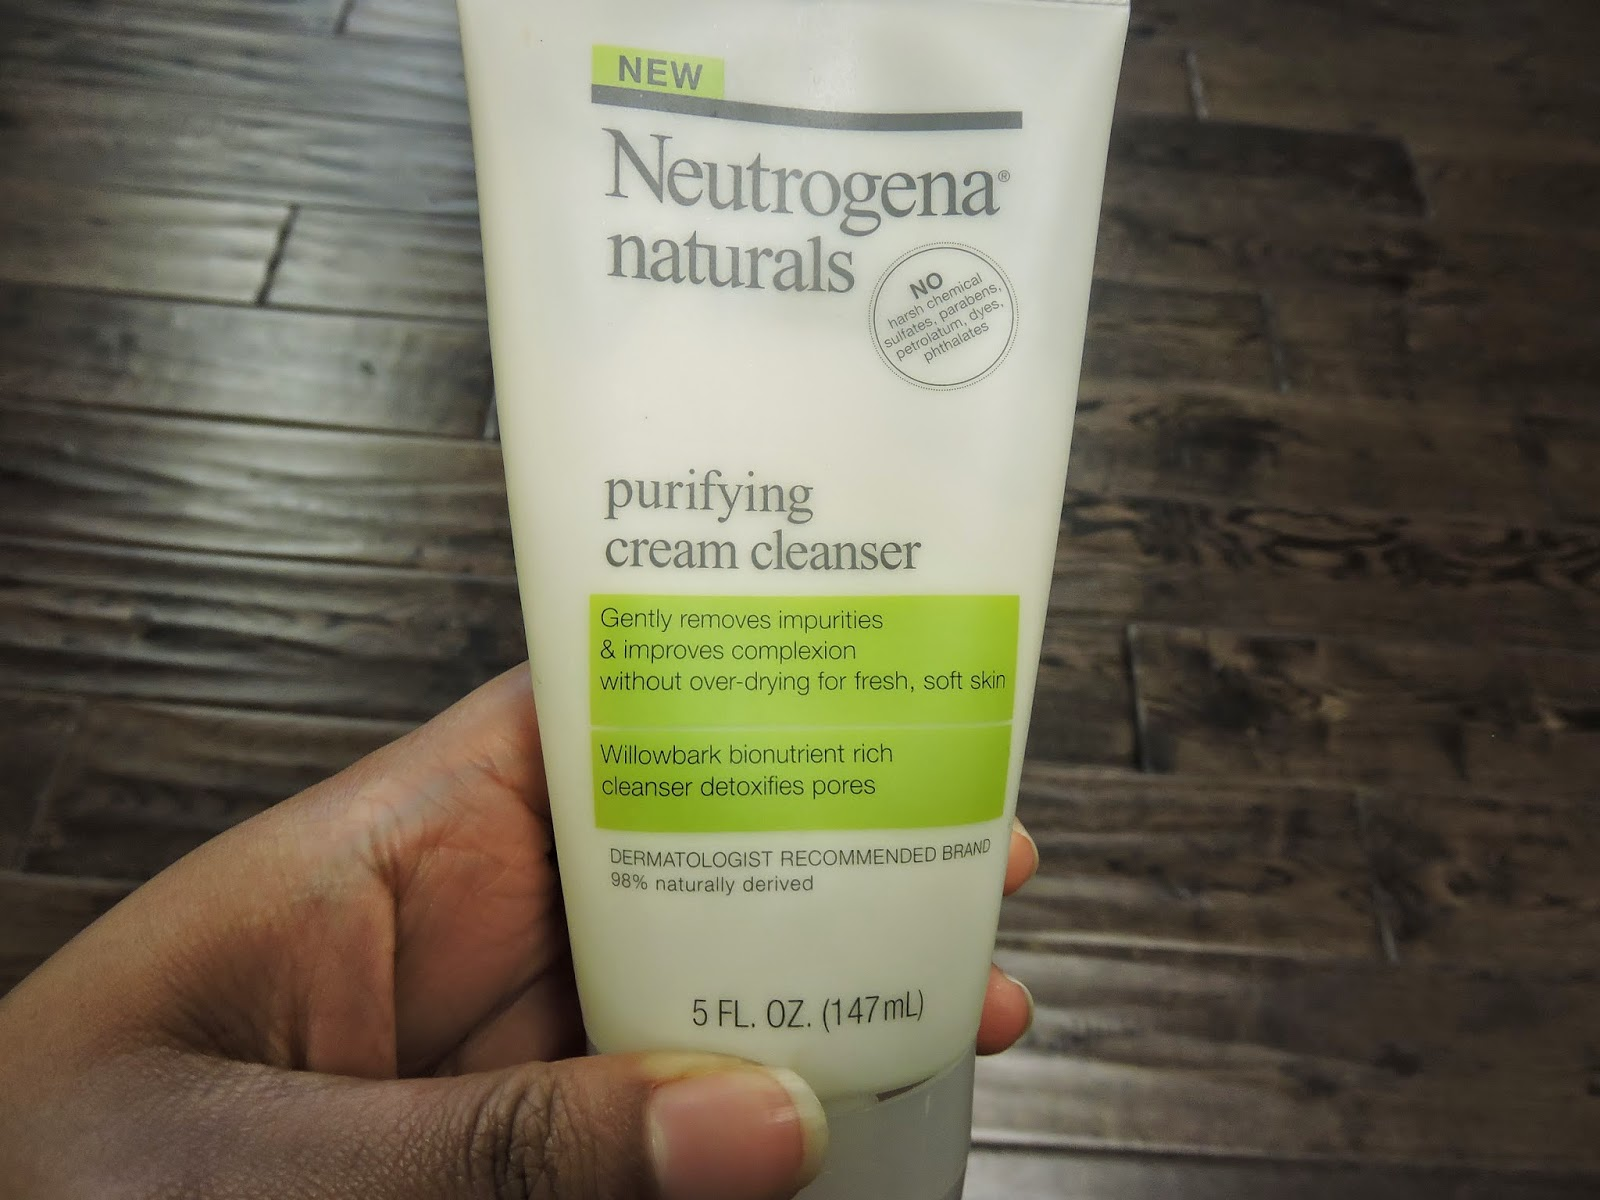 Neutrogena naturals cream cleanser review